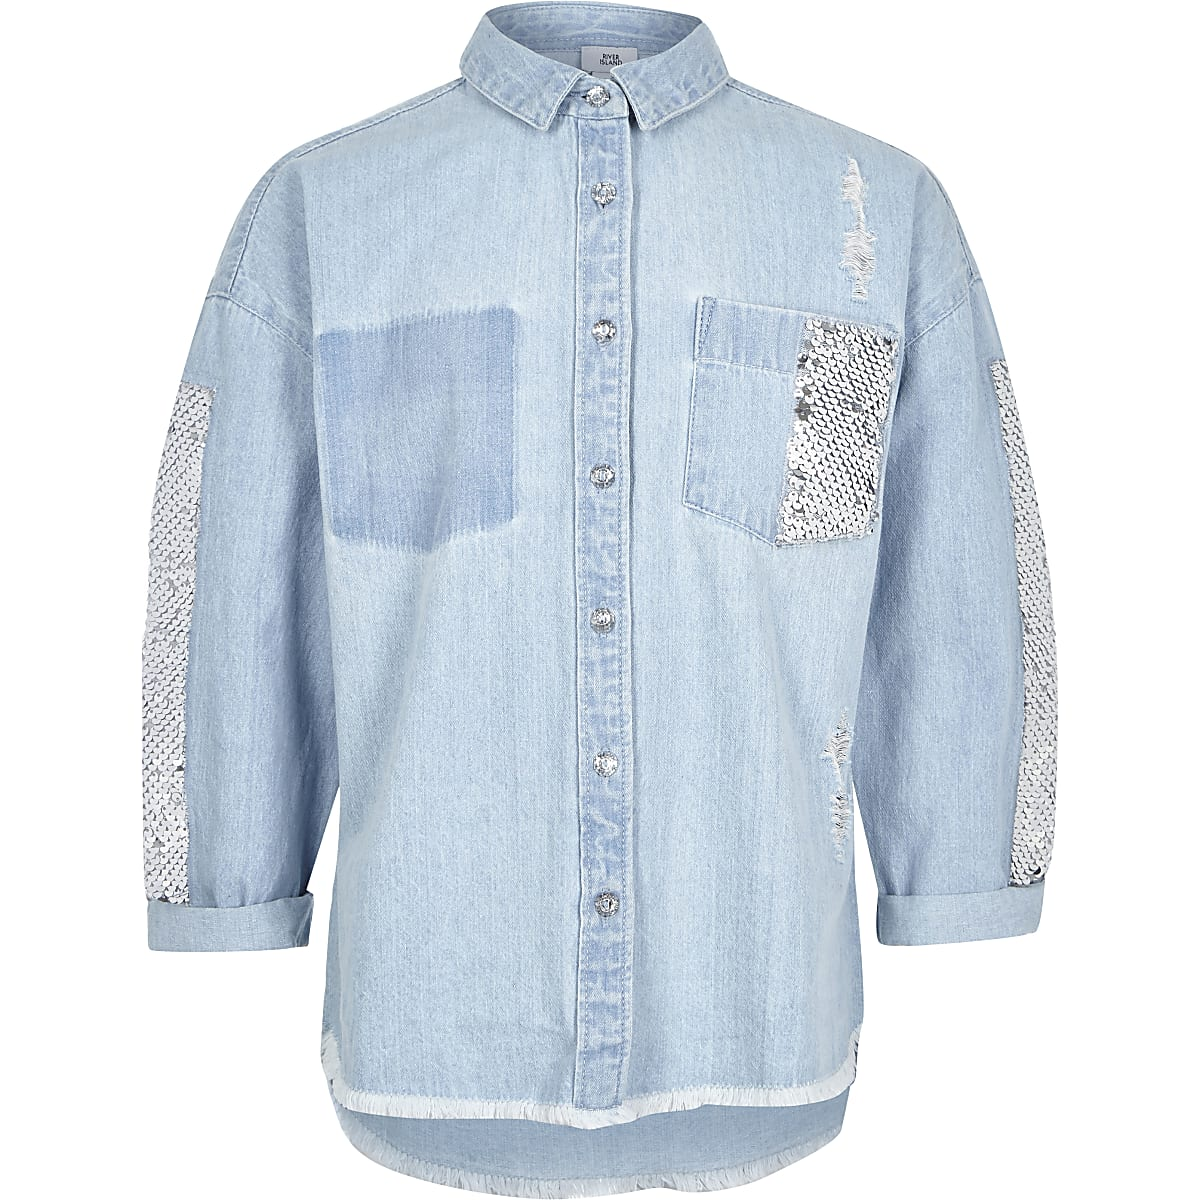 Girls blue sequin embellished denim shacket